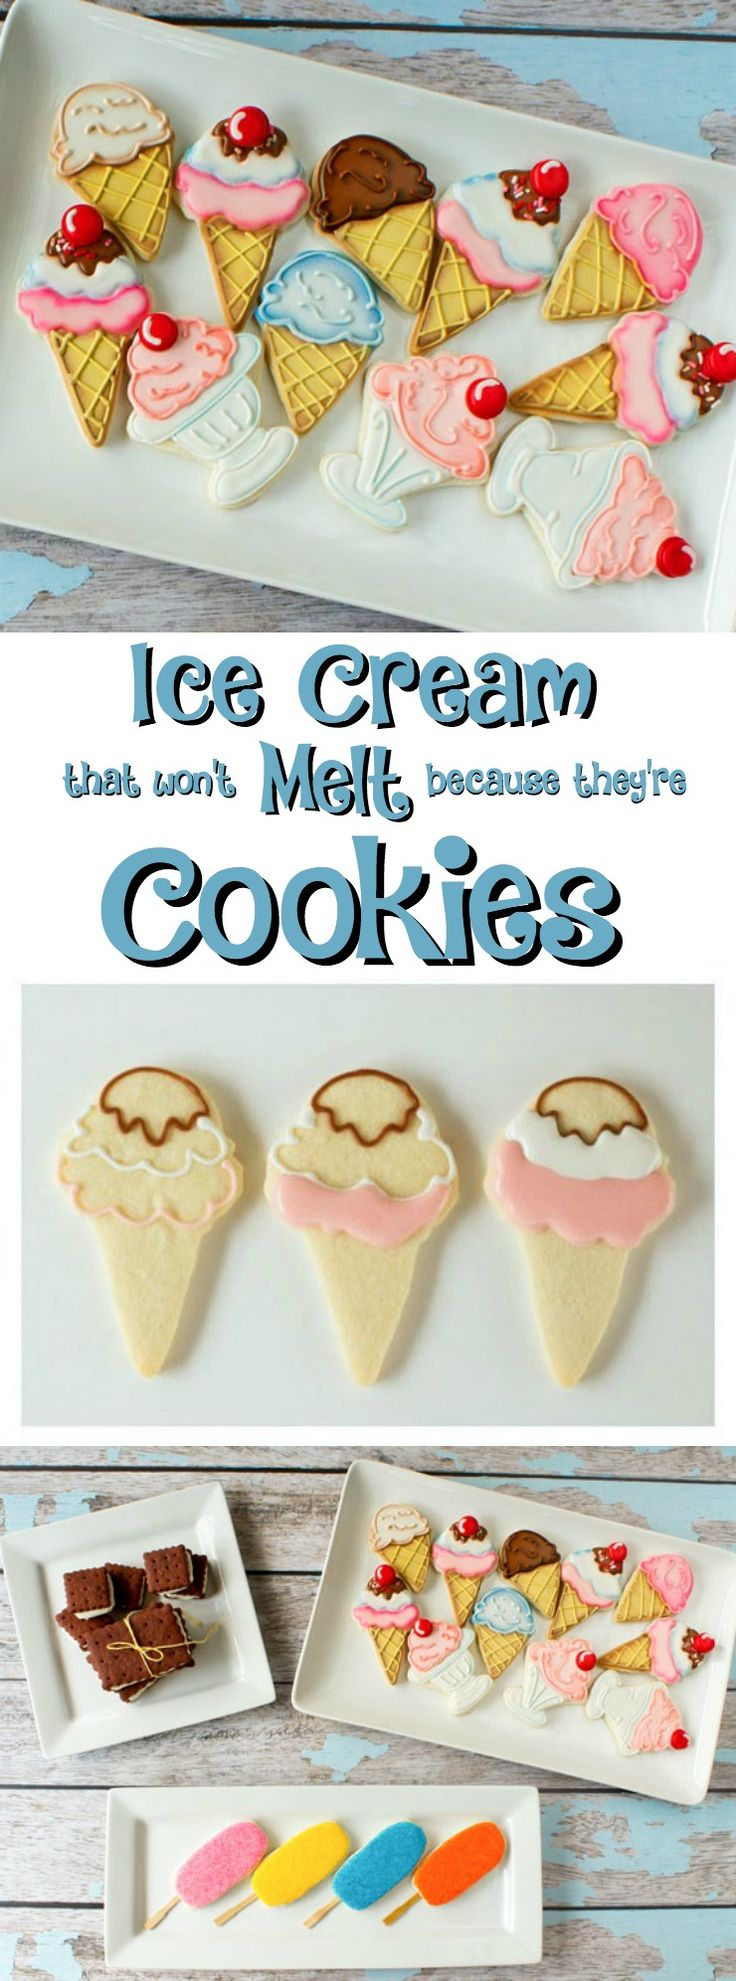 Cookie decorating party ideas - Ice Cream Cookies Via Www Thebearfootbaker Com